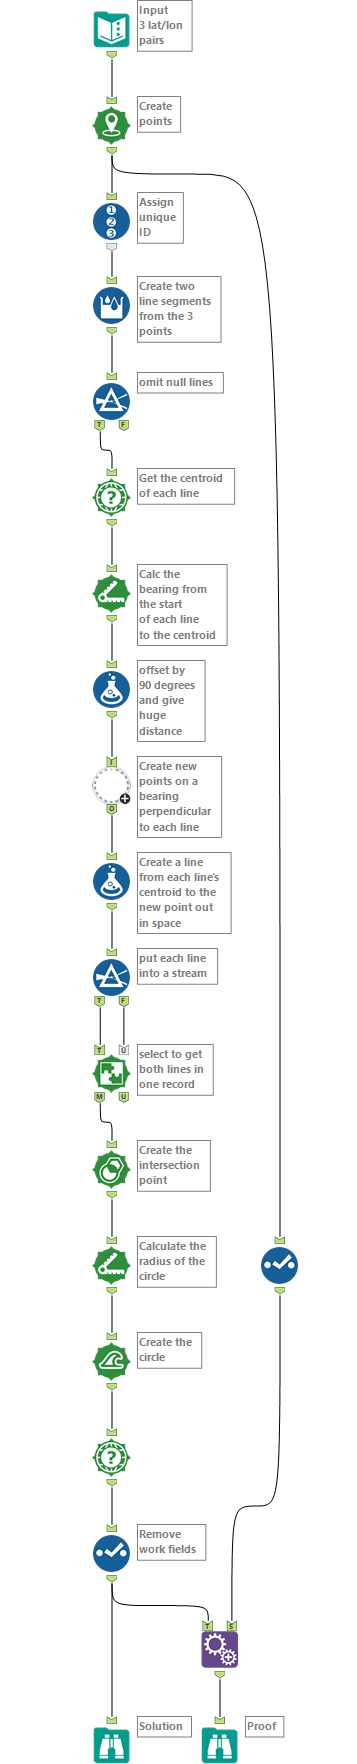 Solved: How do you build a circle from 3 points? - Alteryx